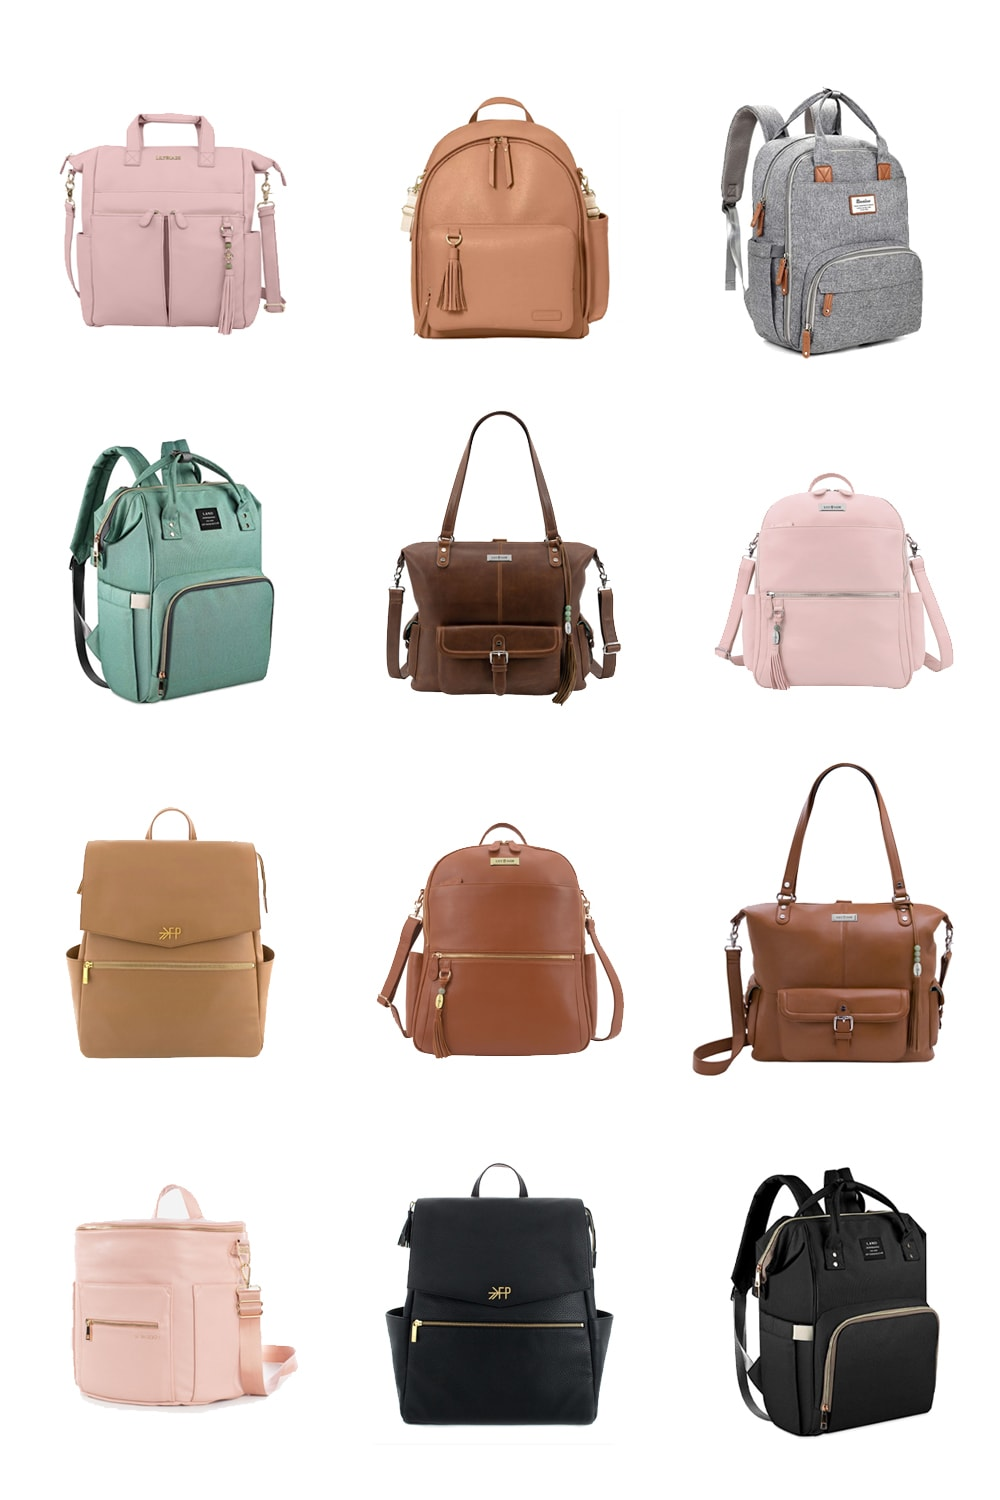 A collage image of 12 stylish diaper bag backpacks.